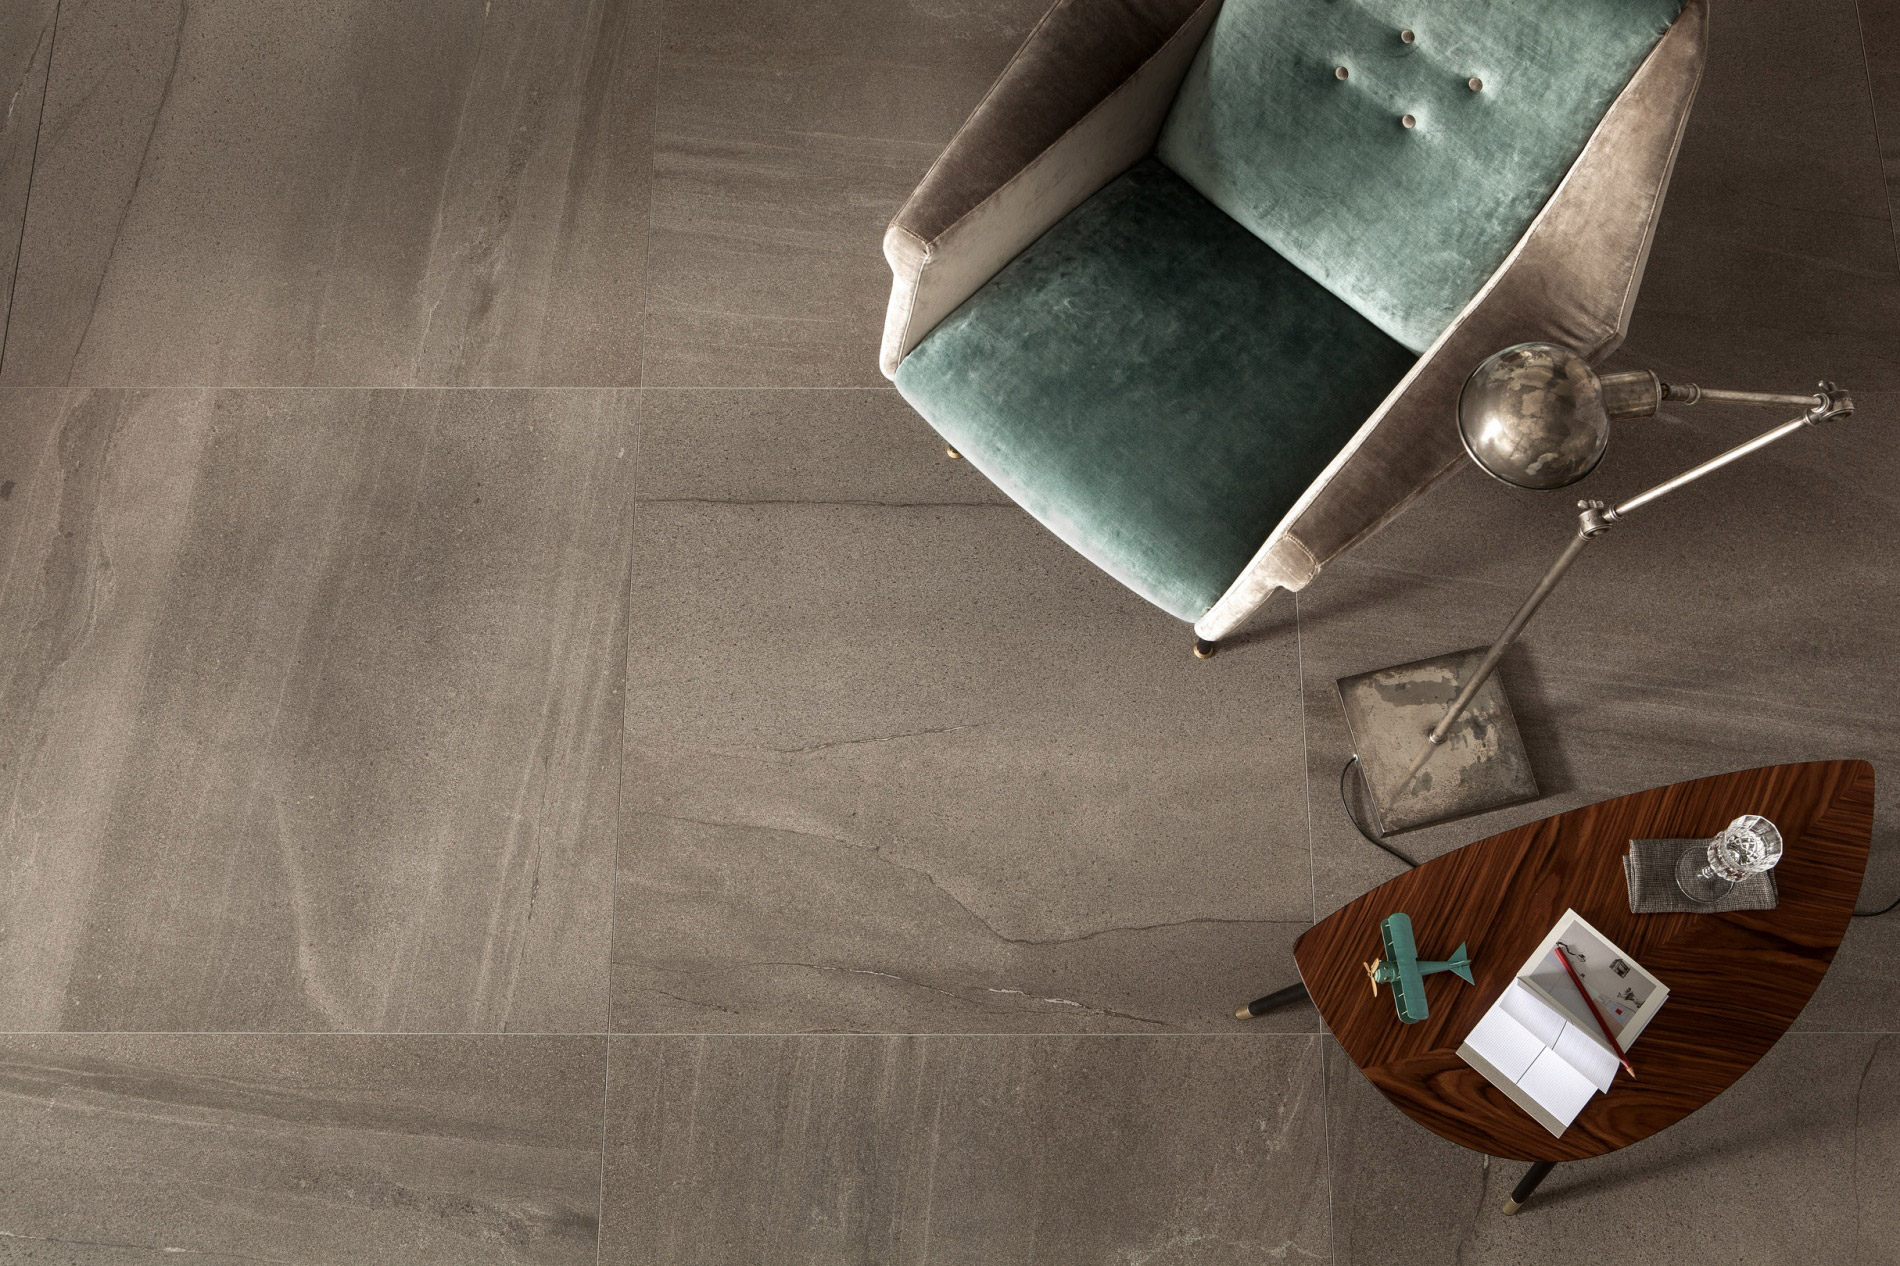 porcelain tile example: Basalt range high resolution photo